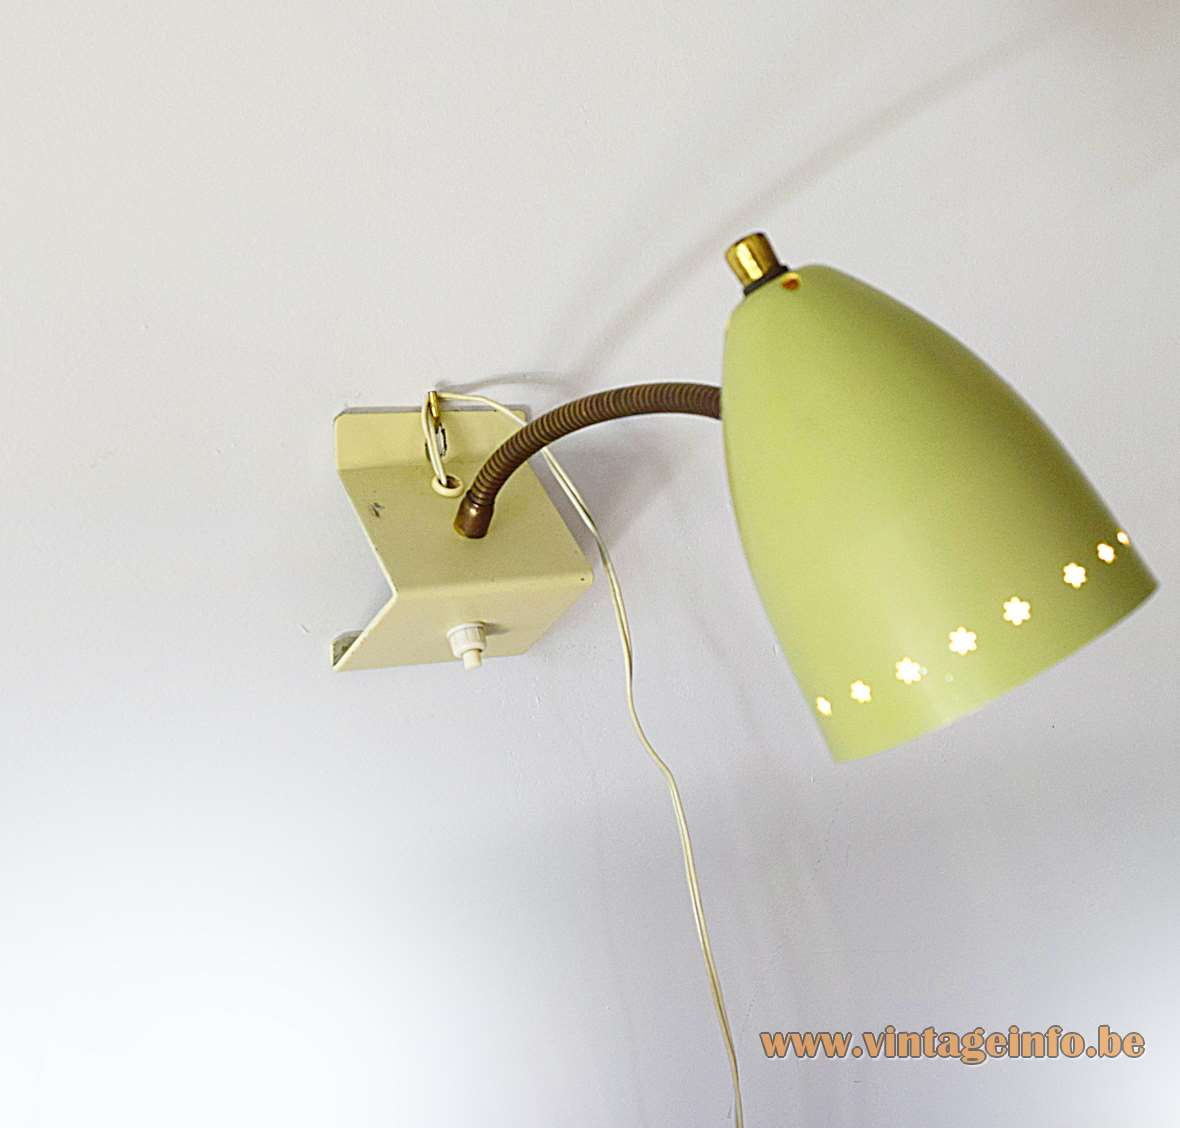 1950s Hala Perforated Stars Wall Lamp olive green brass gooseneck aluminium lampshade MCM 1960s